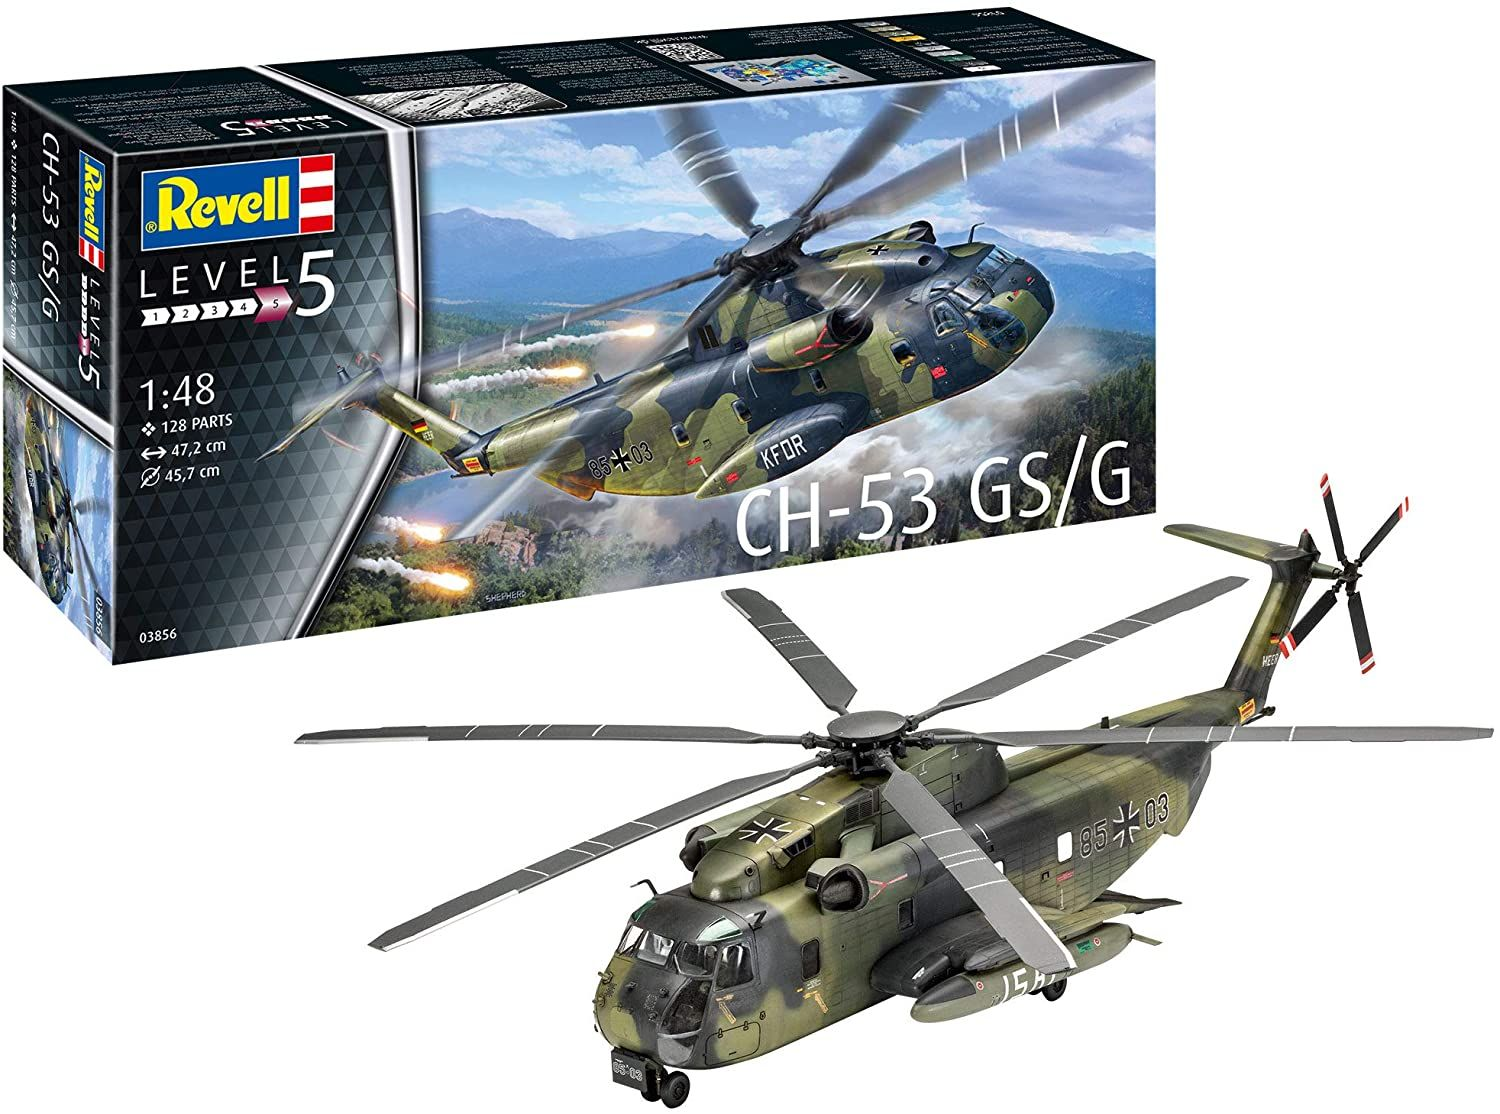 Revell 1/48 Scale Sikorsky CH-53 GSG